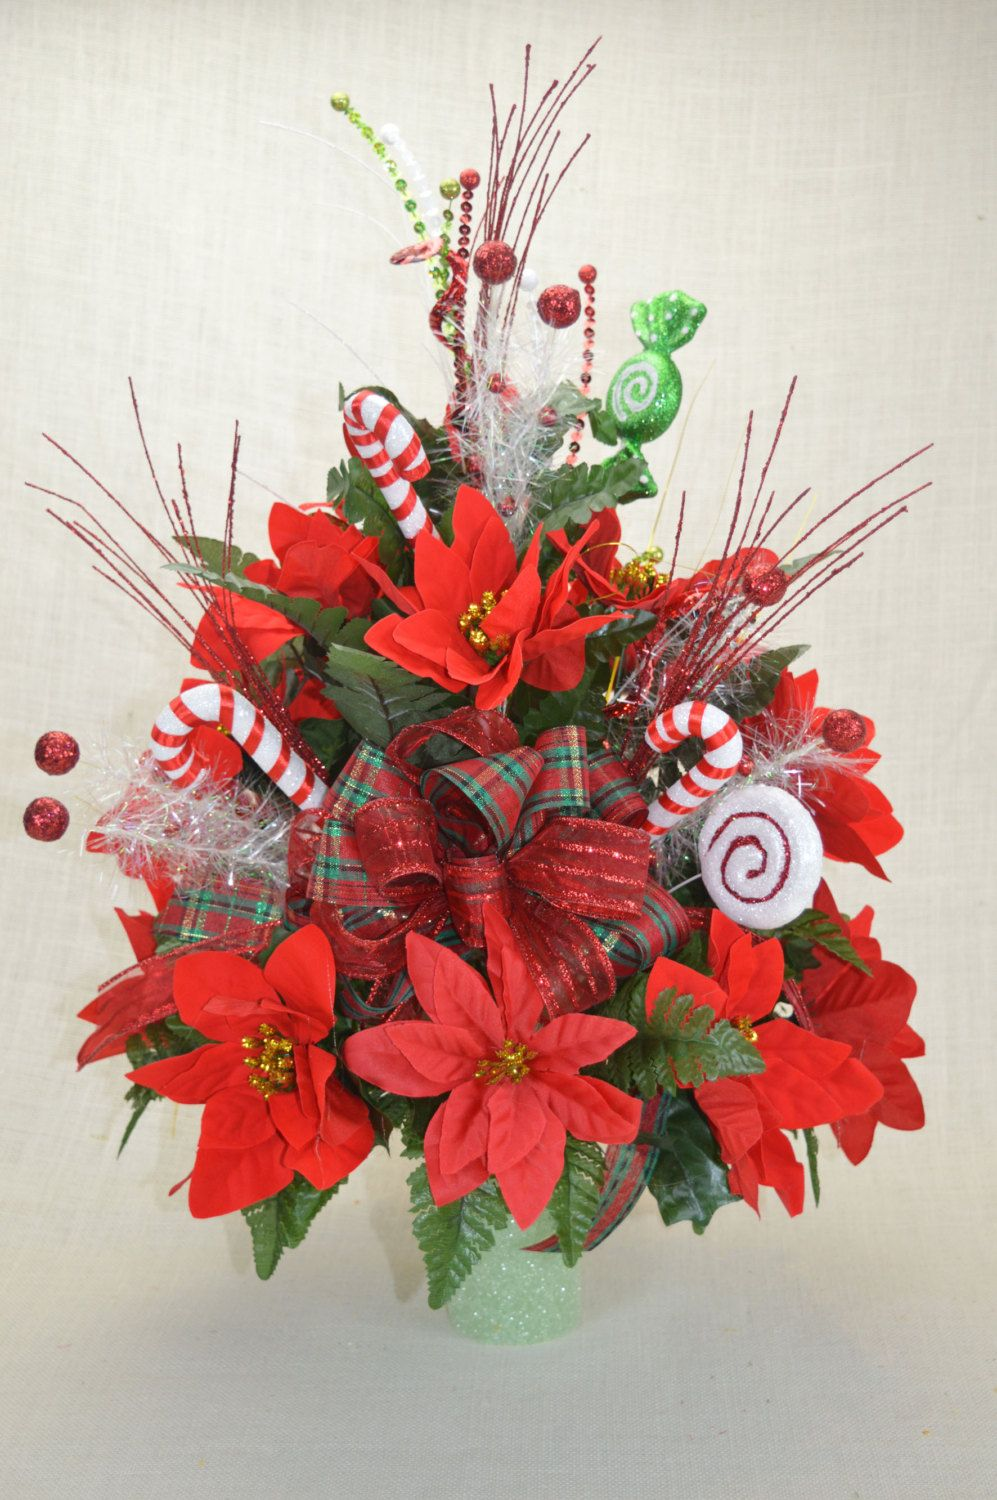 No Cc011 Holiday Christmas Silk Flower Cemetery Cone Vase Arrangement Tombstone Saddle Cemet Christmas Flowers Christmas Flower Arrangements Cemetery Flowers